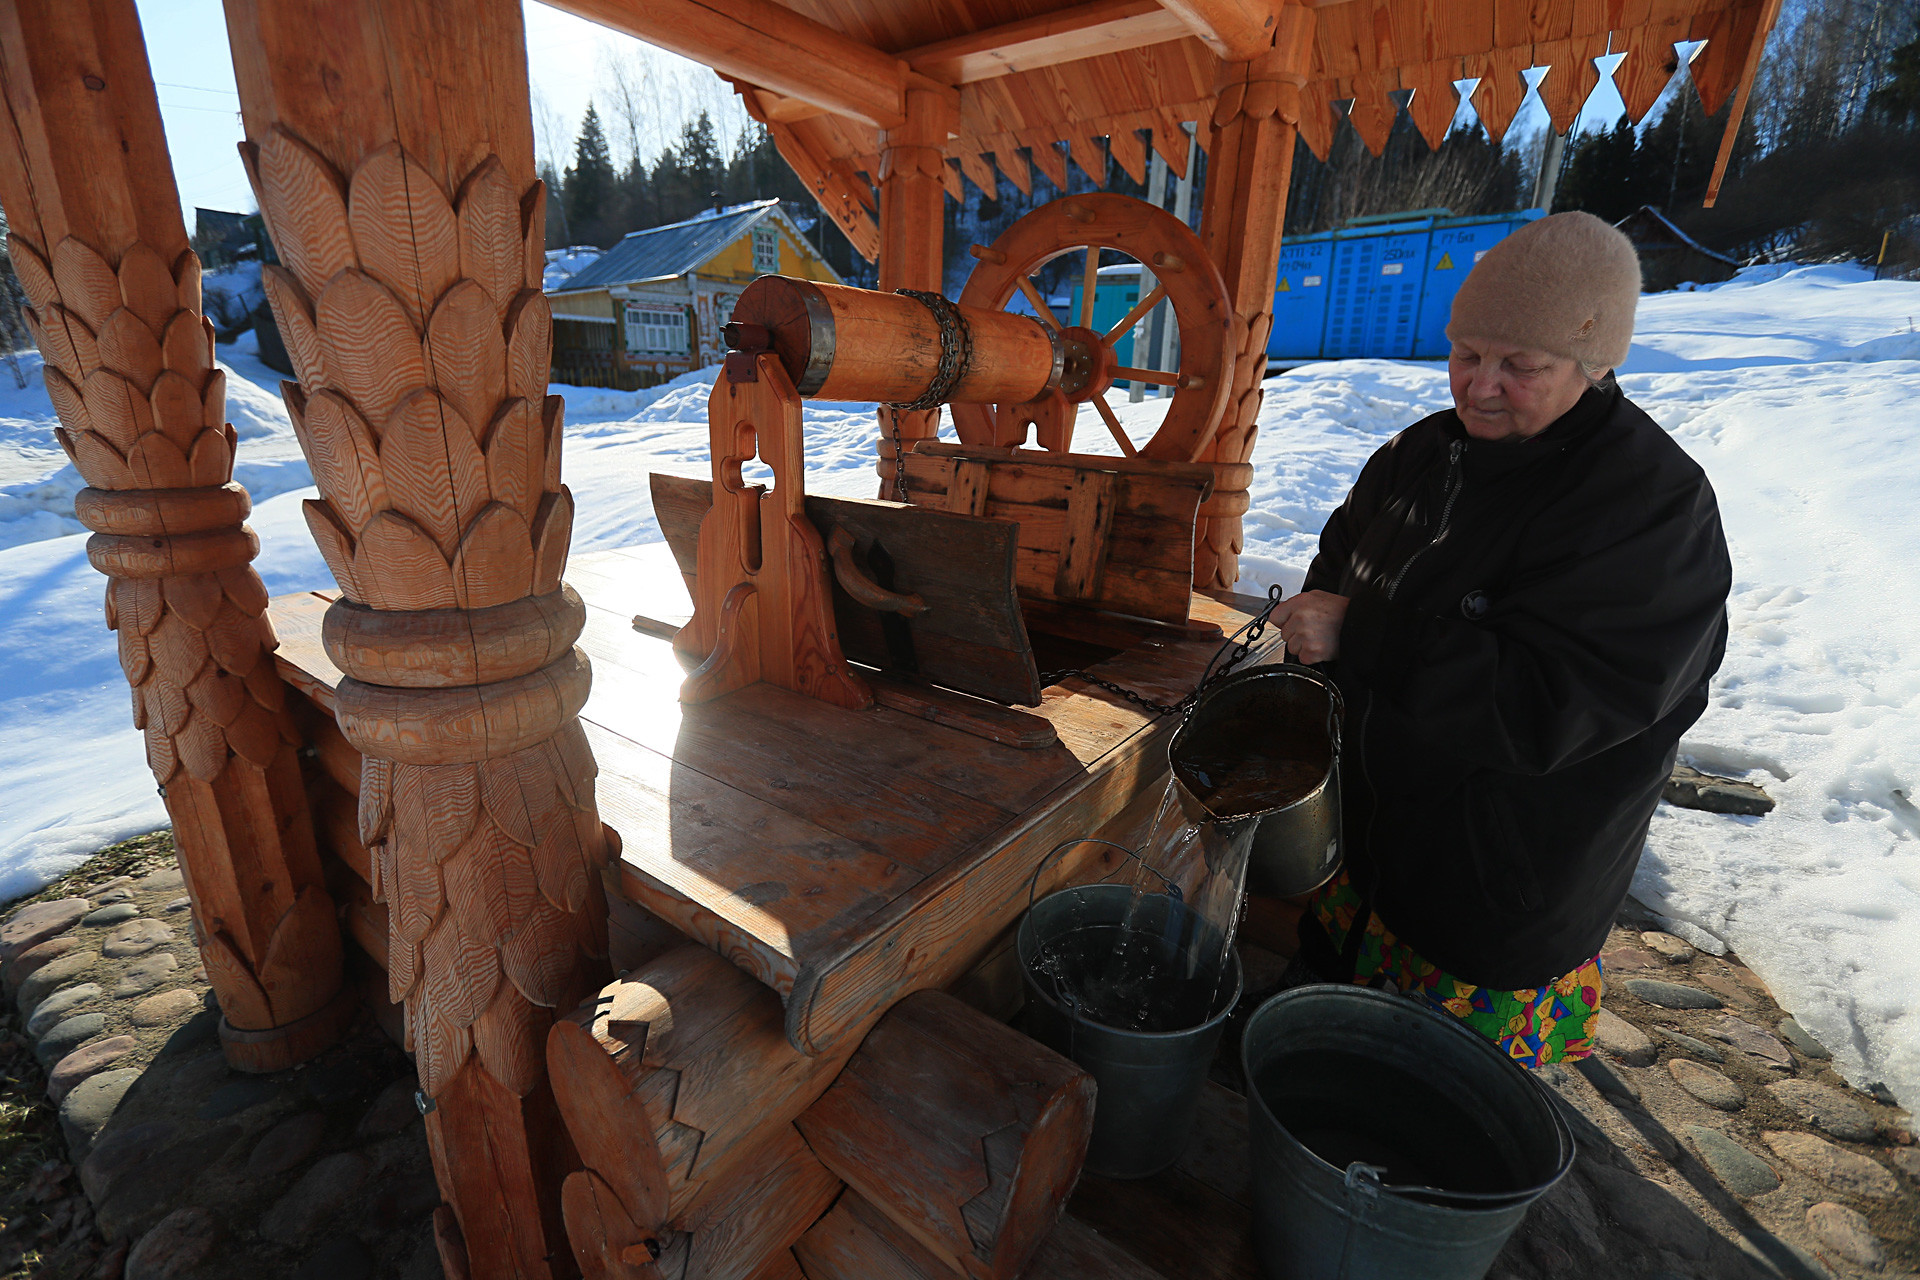 A woman takes water out of a well in the town of Plyos, Ivanovo Region.